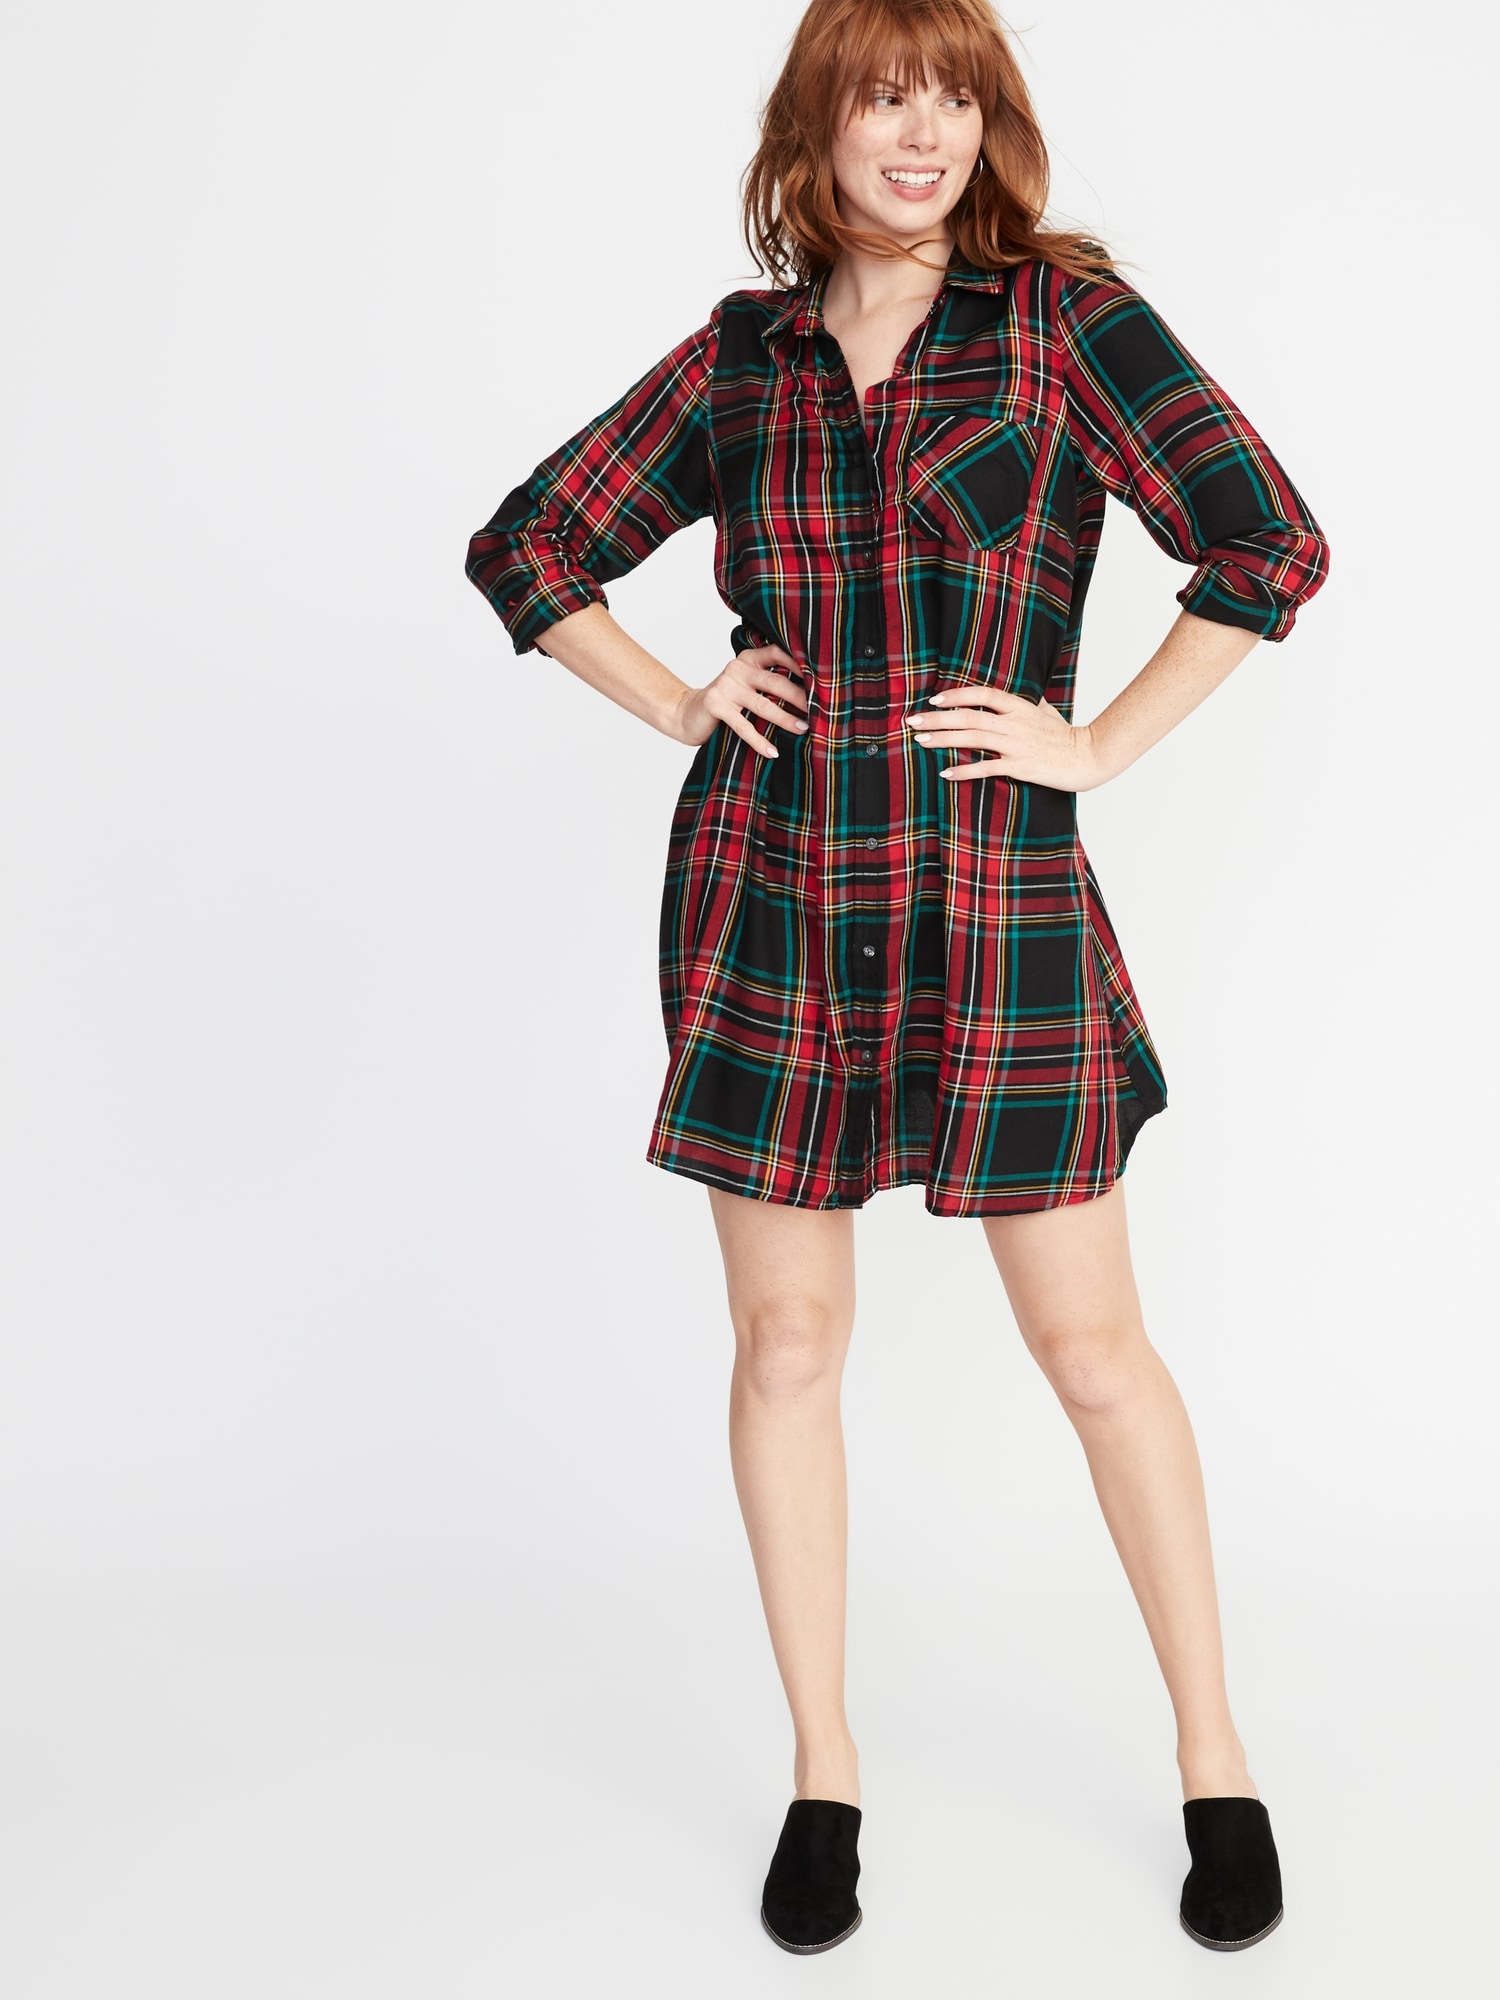 863a4586 Plaid Swing Shirt Dress for Women | Old Navy